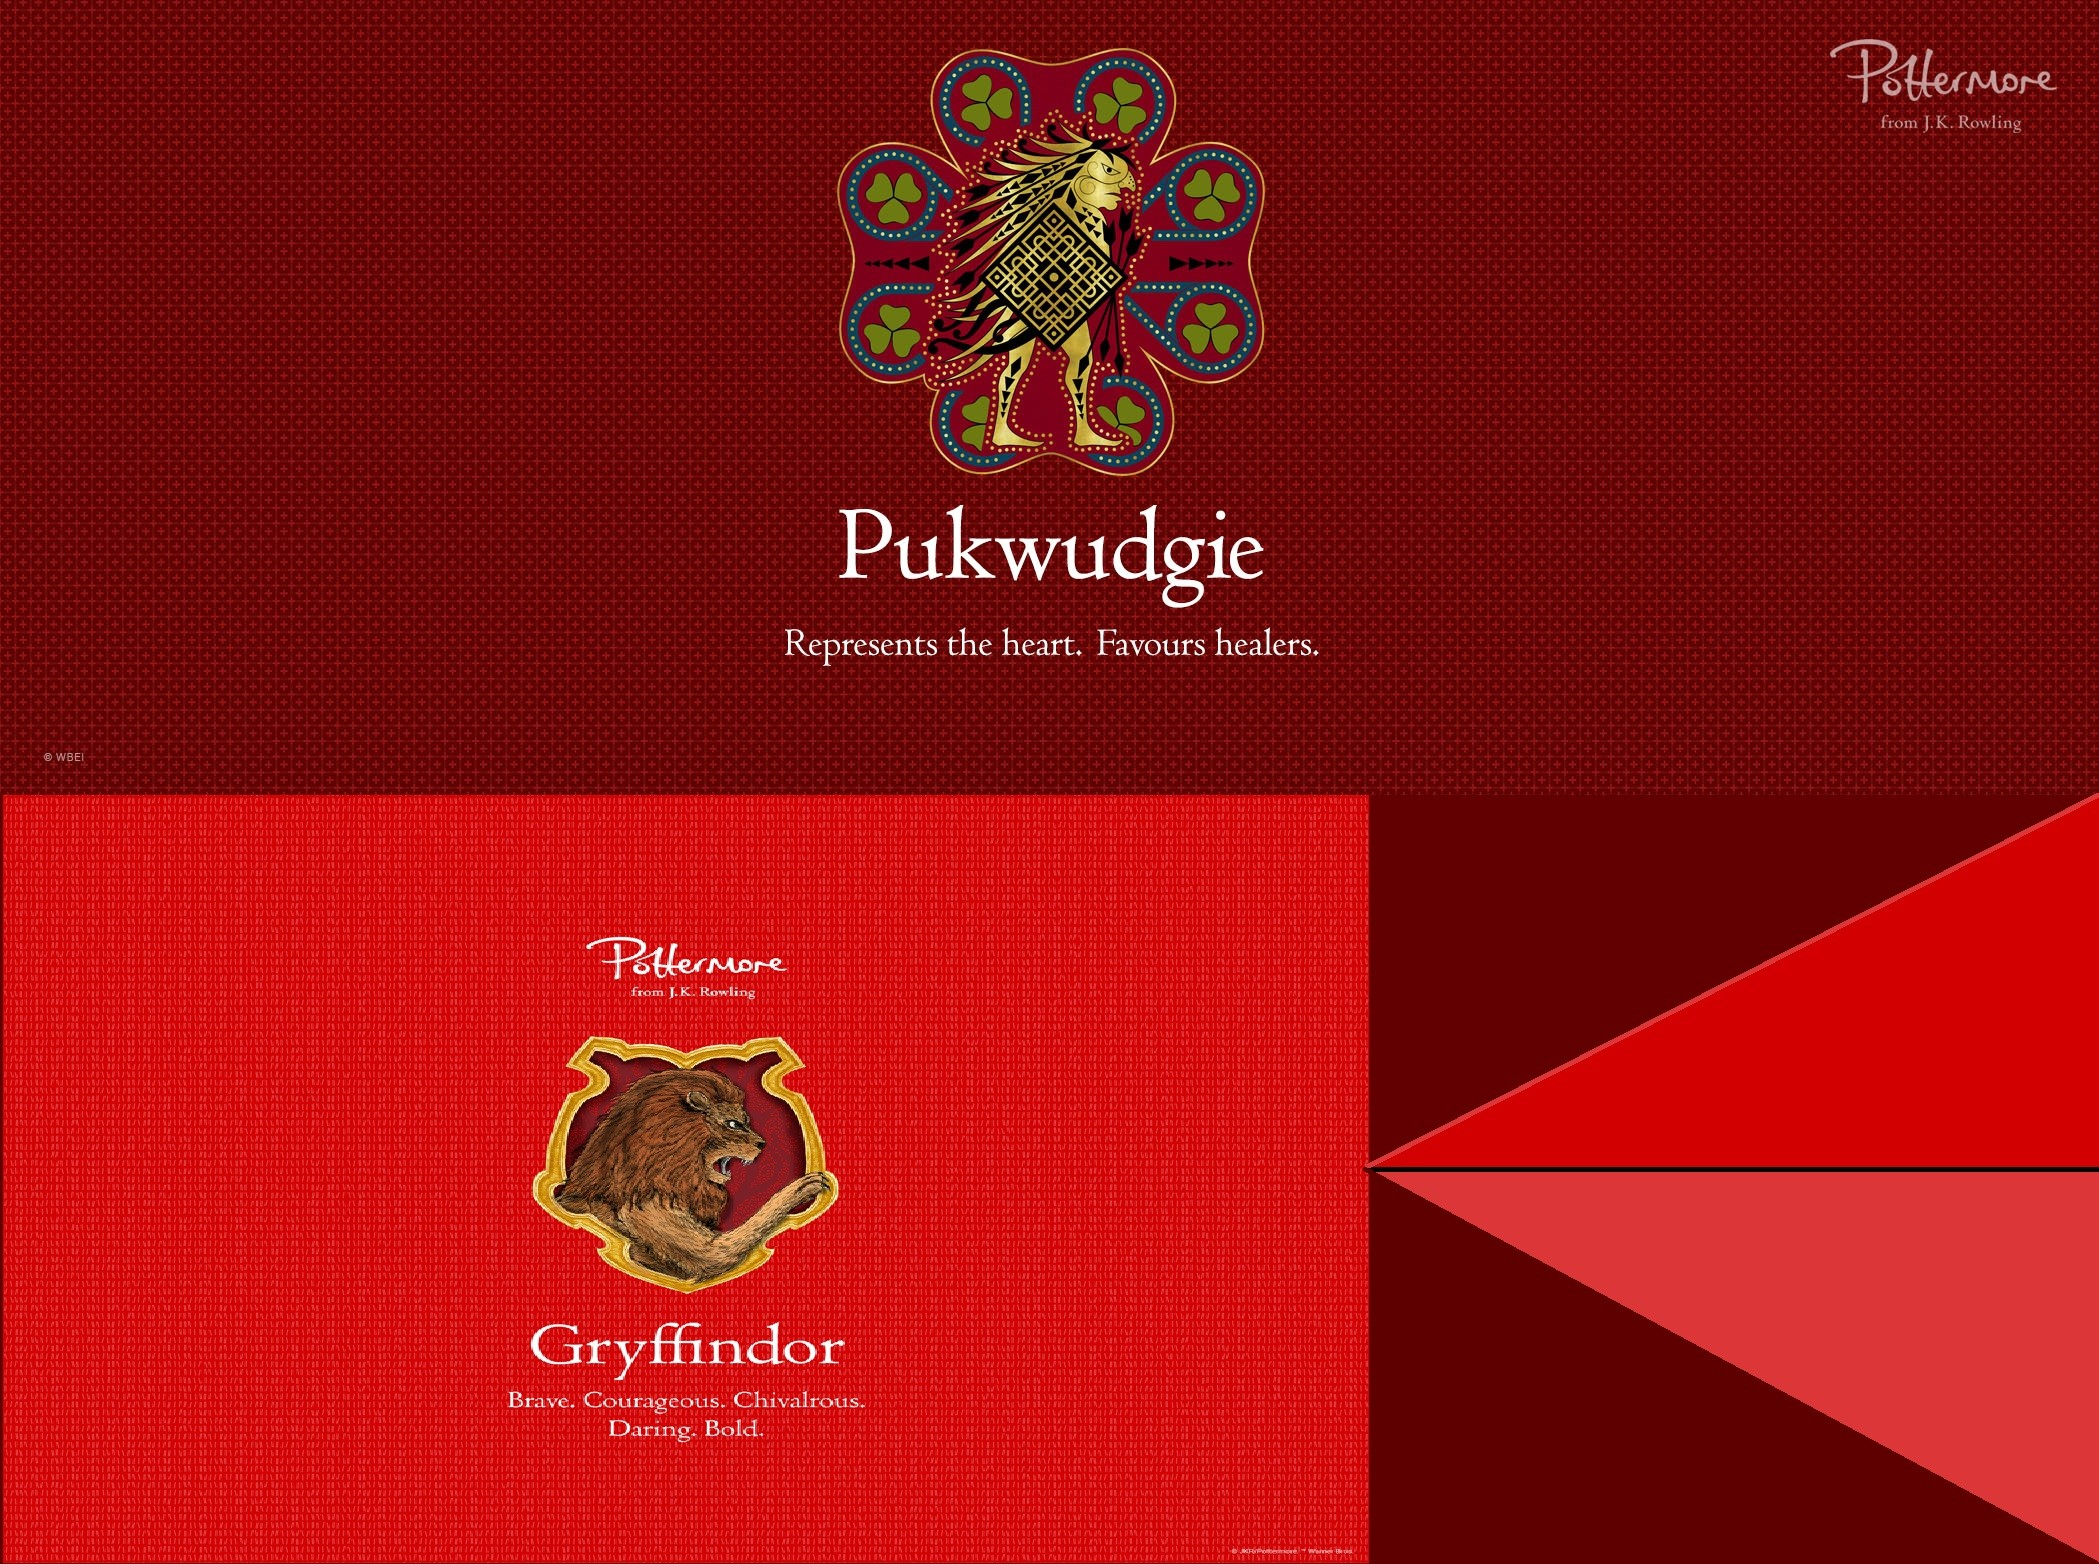 2099x1564 Wallpapers Pukwudgie-Gryffindor by JuniorS89 Wallpapers Pukwudgie-Gryffindor  by JuniorS89